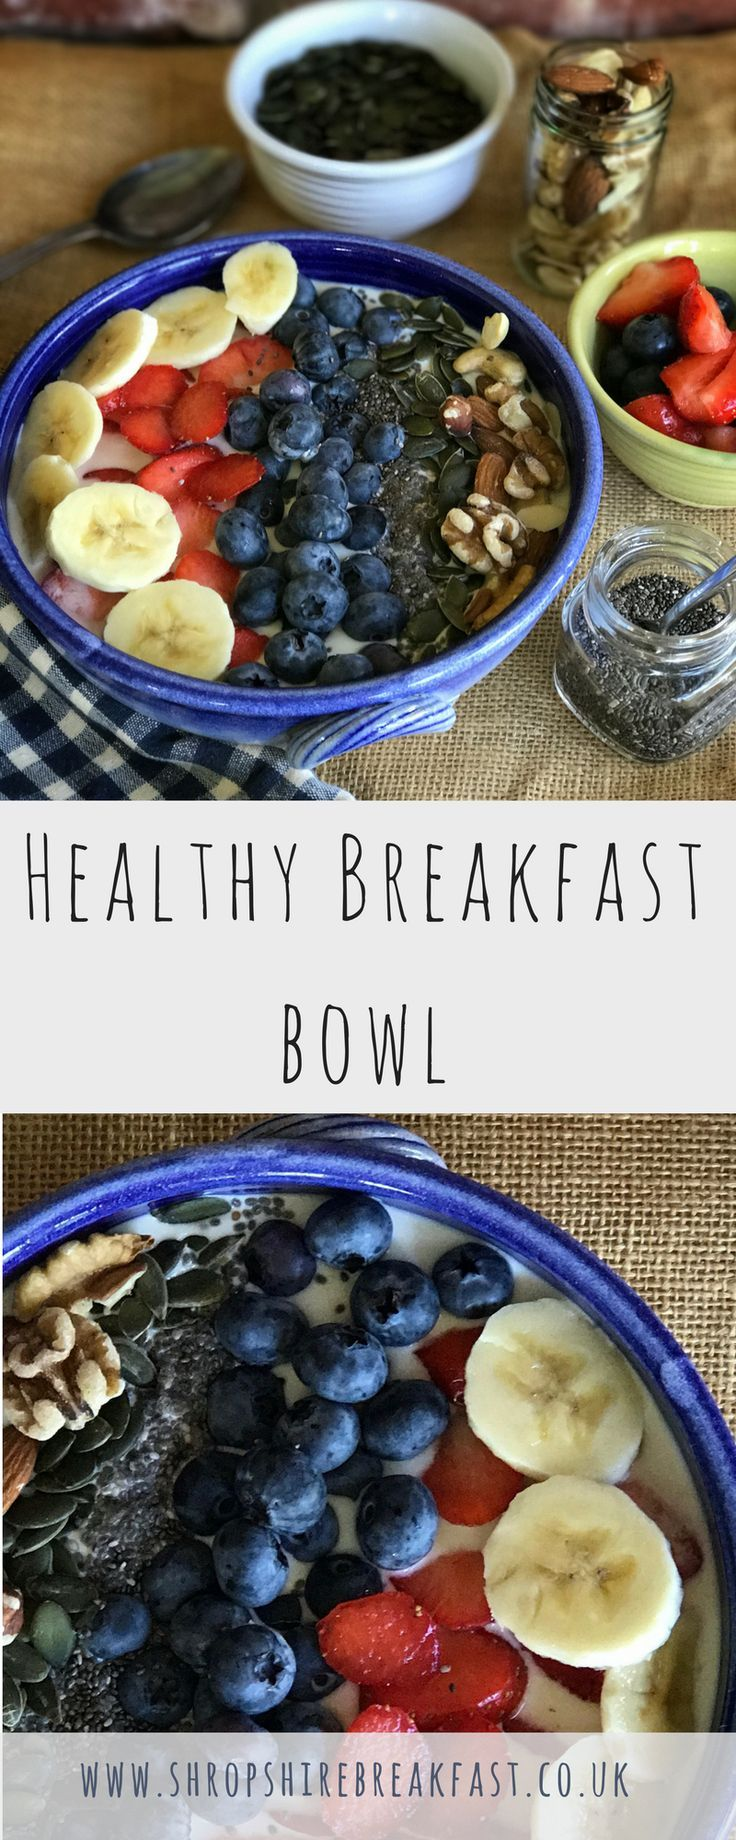 Healthy breakfast bowl. Turn overnight oats into a healthy breakfast bowl by adding your choice of berries, bananas, nuts, chia and pumpkins seeds.